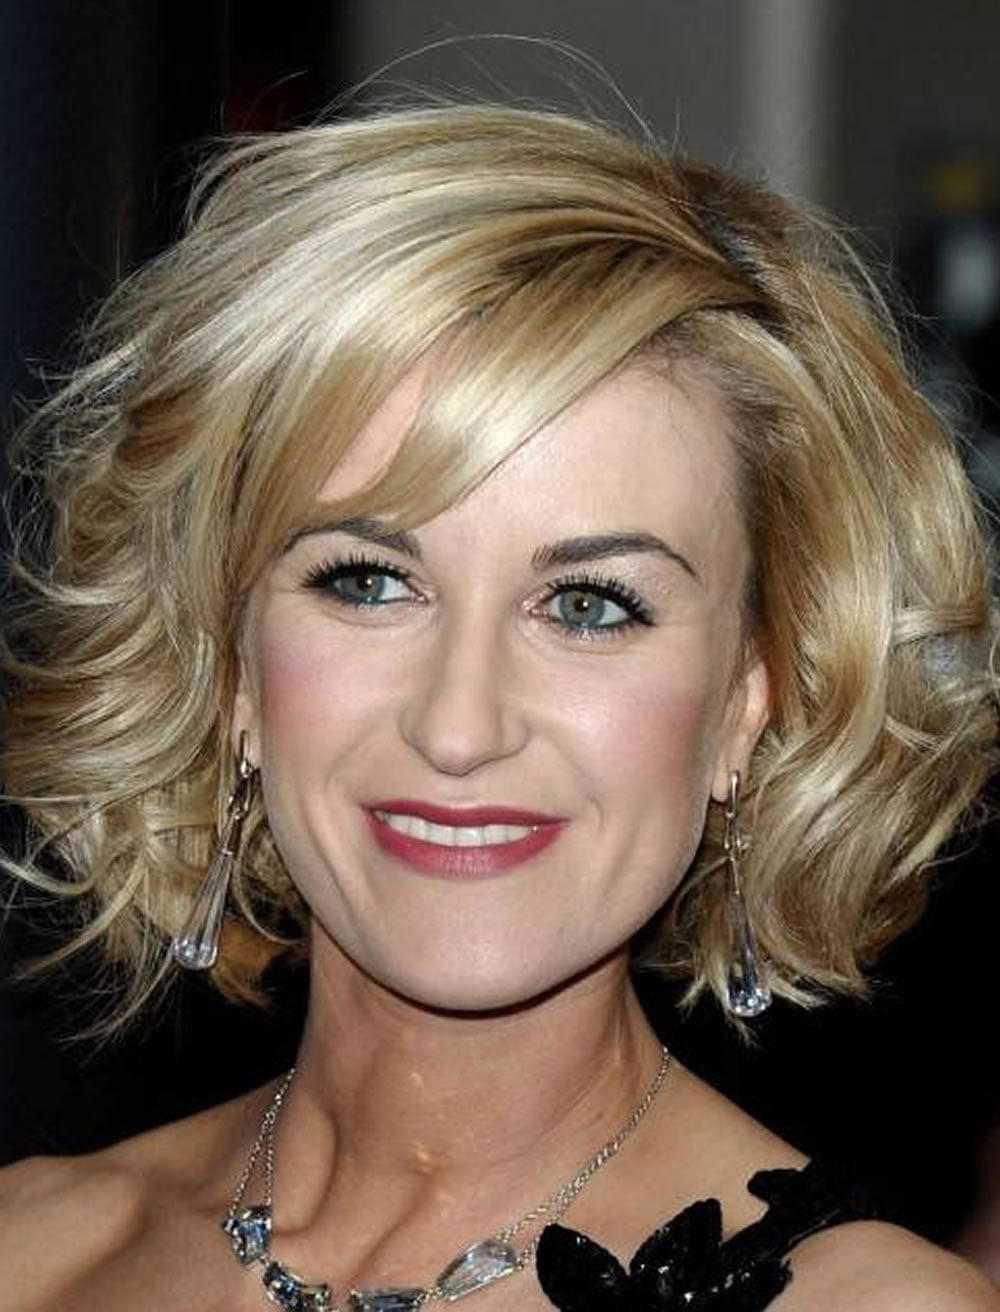 bob hairstyles for older women over 40 to 60 years 2017-2018